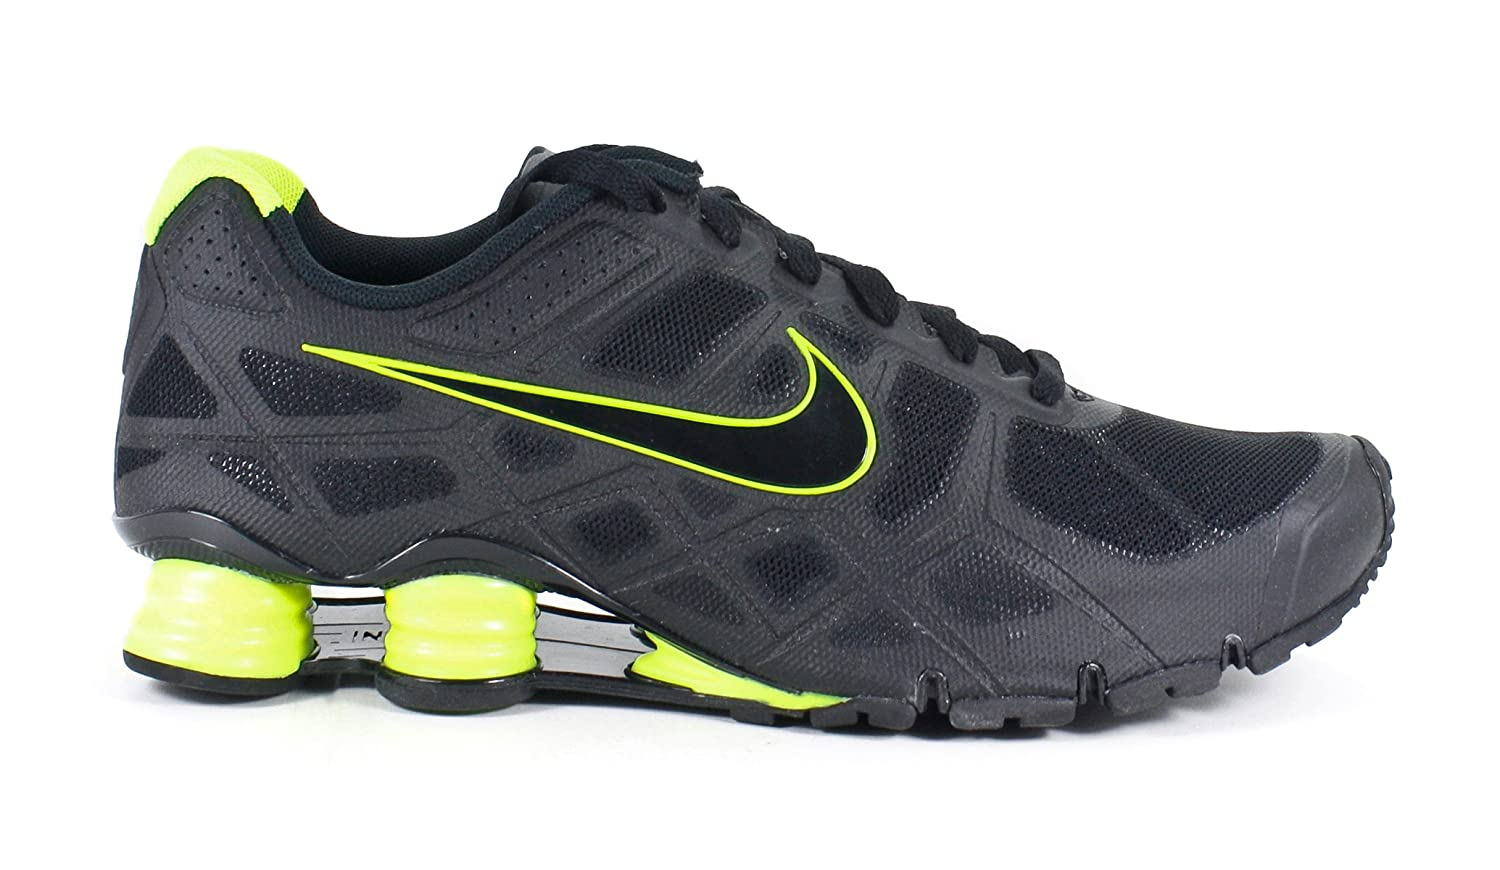 promo code 63799 63f05 Amazon.com Nike SHOX TURBO+ 12 (MENS) - 7 Sports  Outdoors